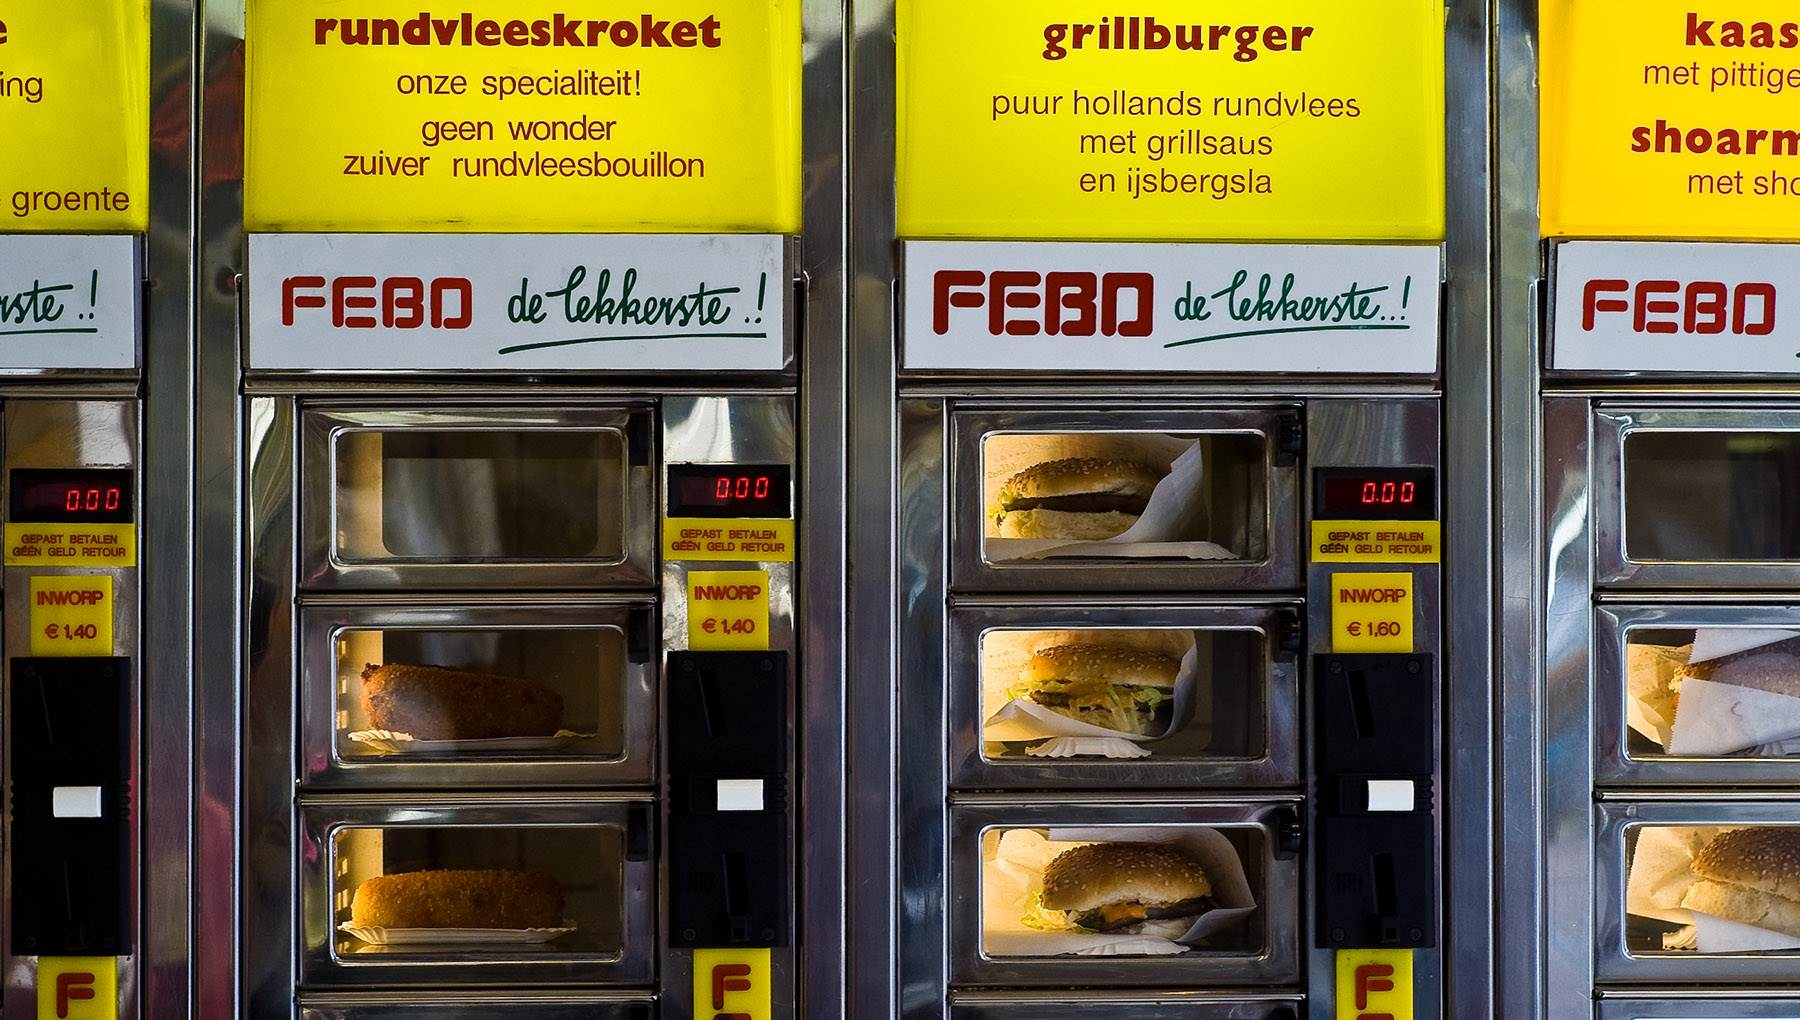 febo-cc-by-20-lars-plougmann-via-flickr.